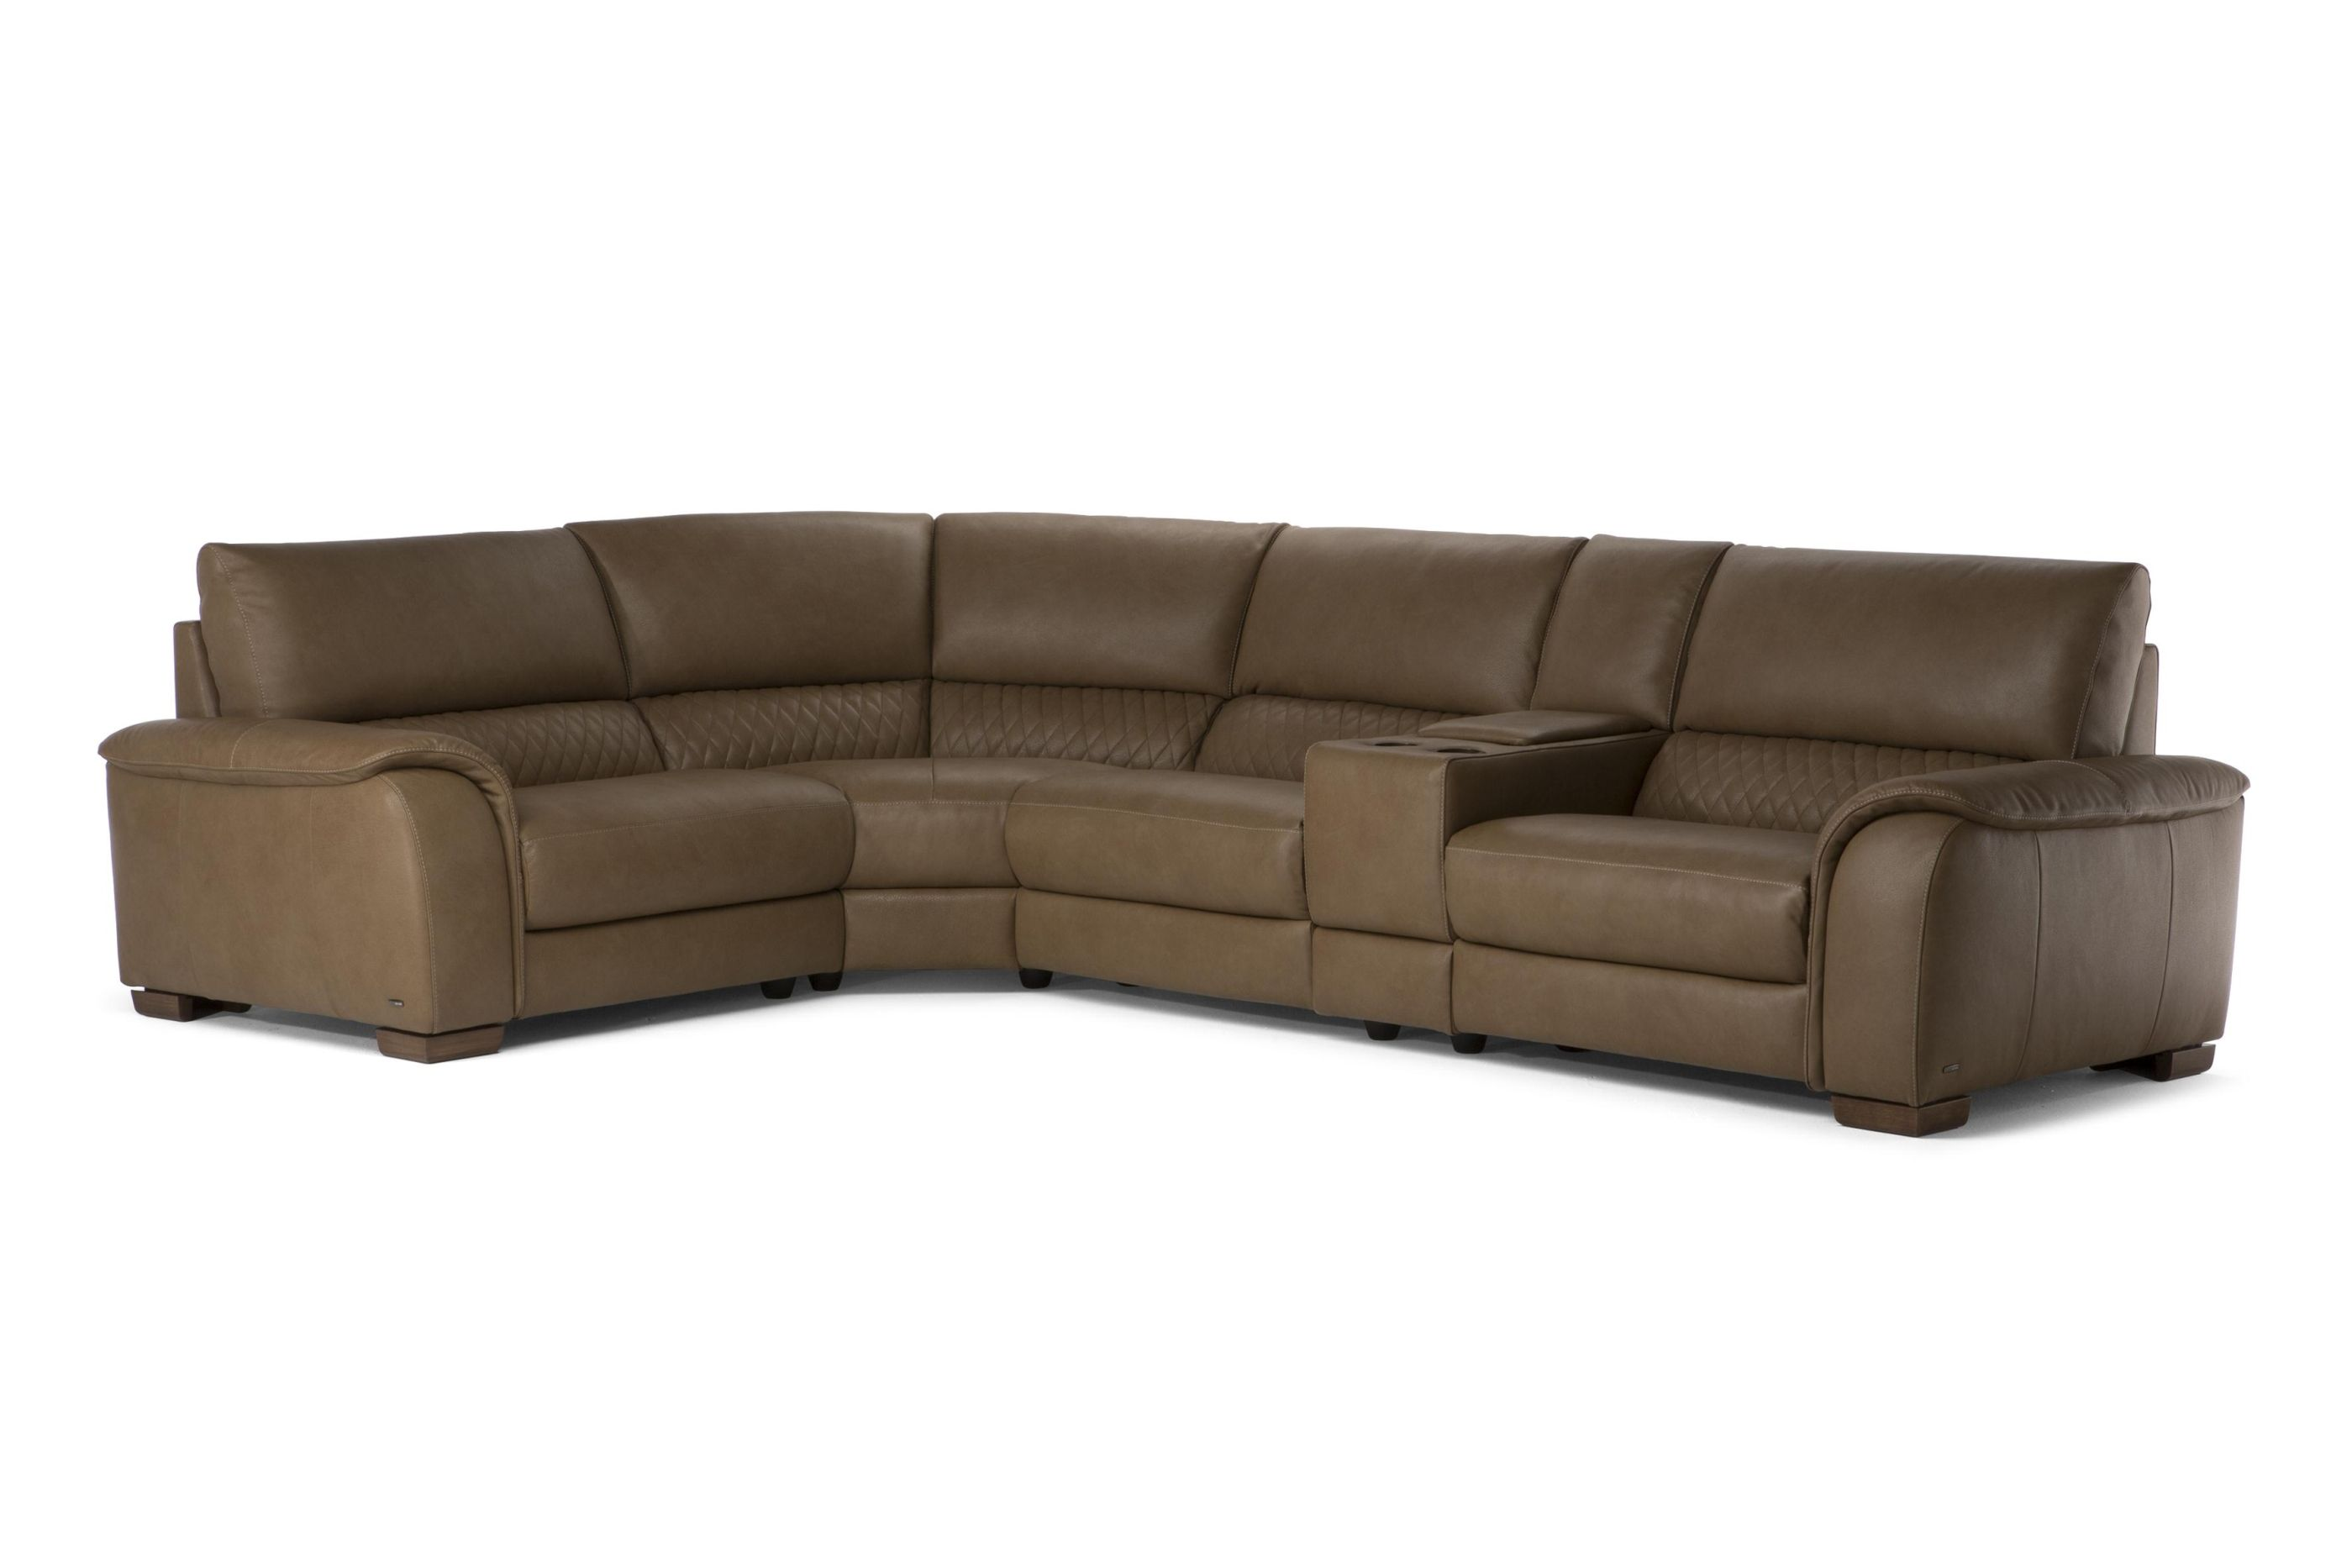 Natuzzi Editions Salvatore Sectional Sectional Sofas